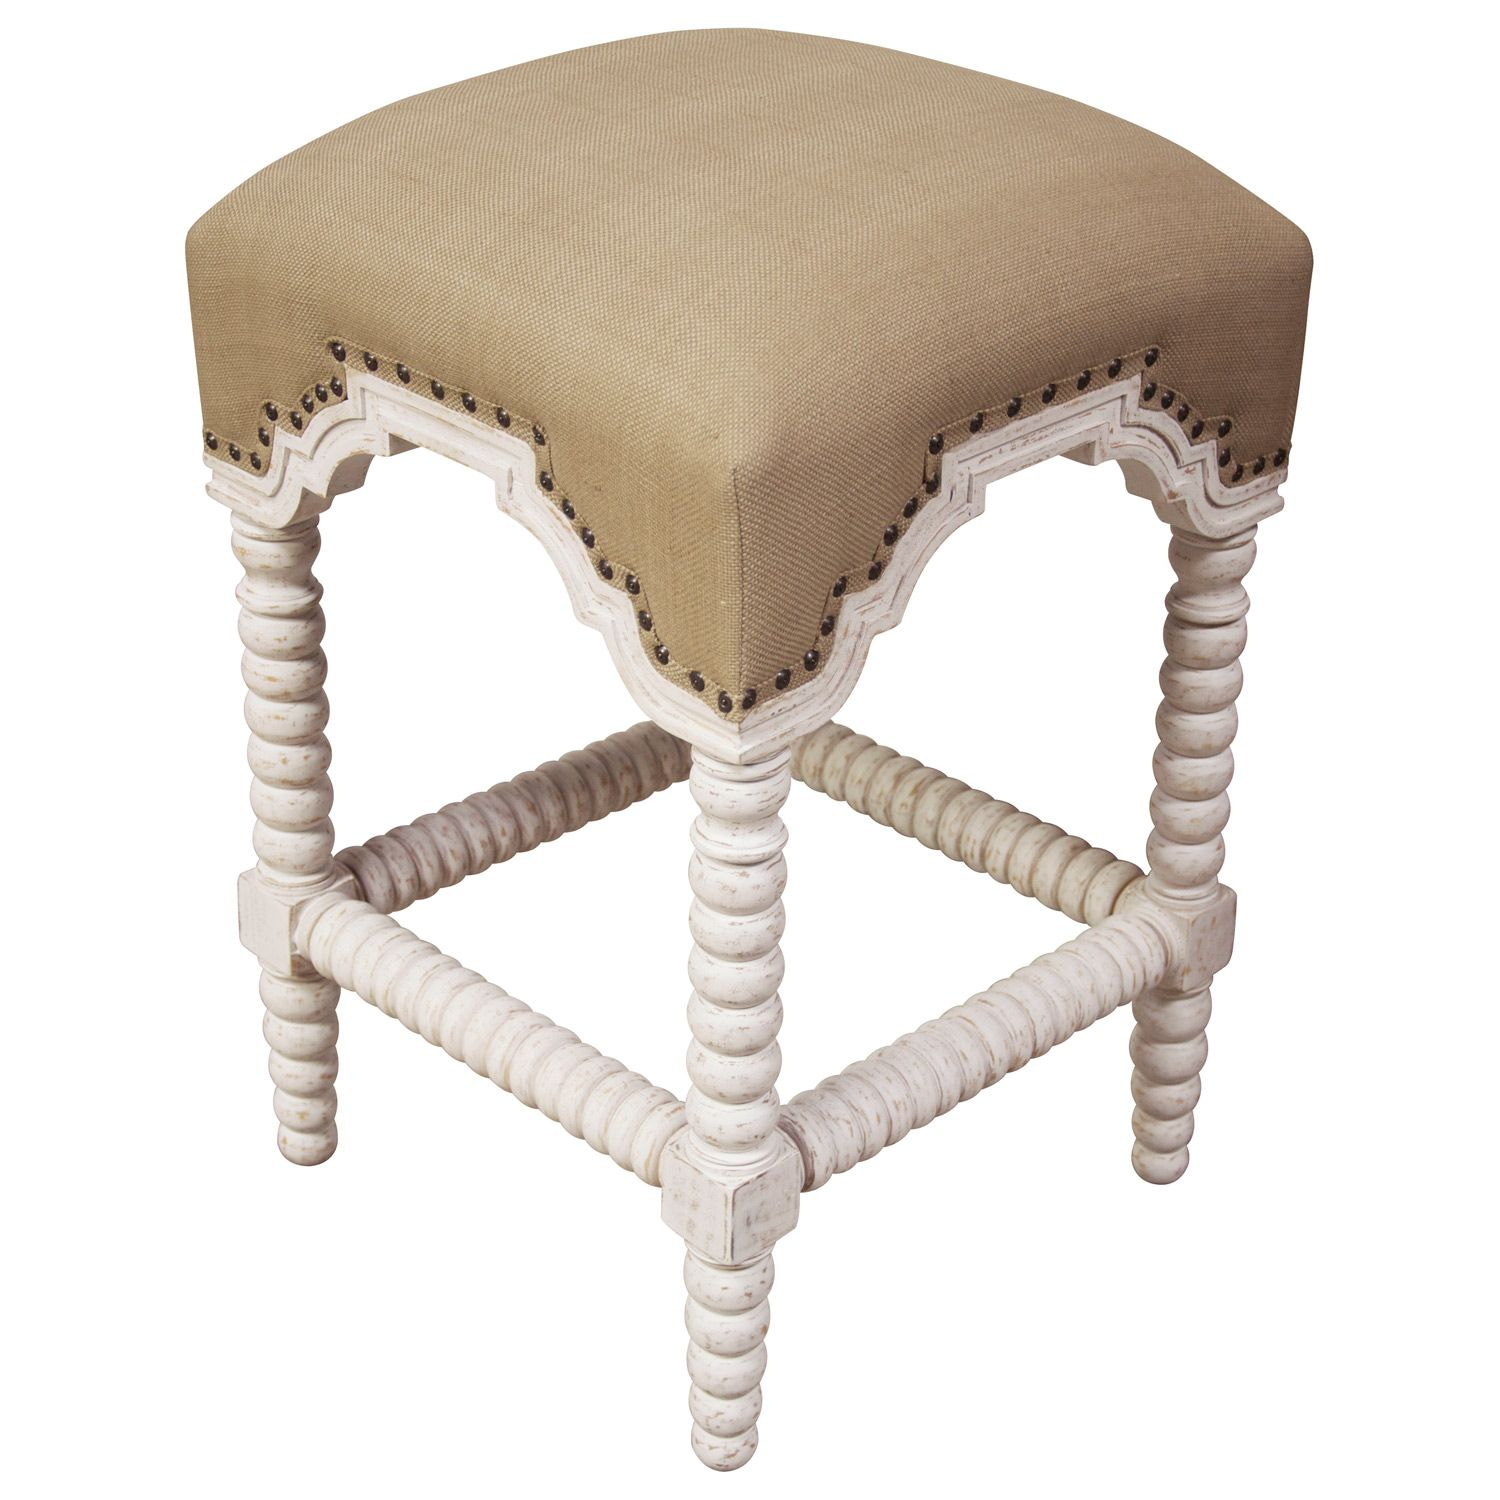 Noir Abacus Counter Stool White Wash Noigstool201whsc Counter Stools Black Counter Stools Furniture